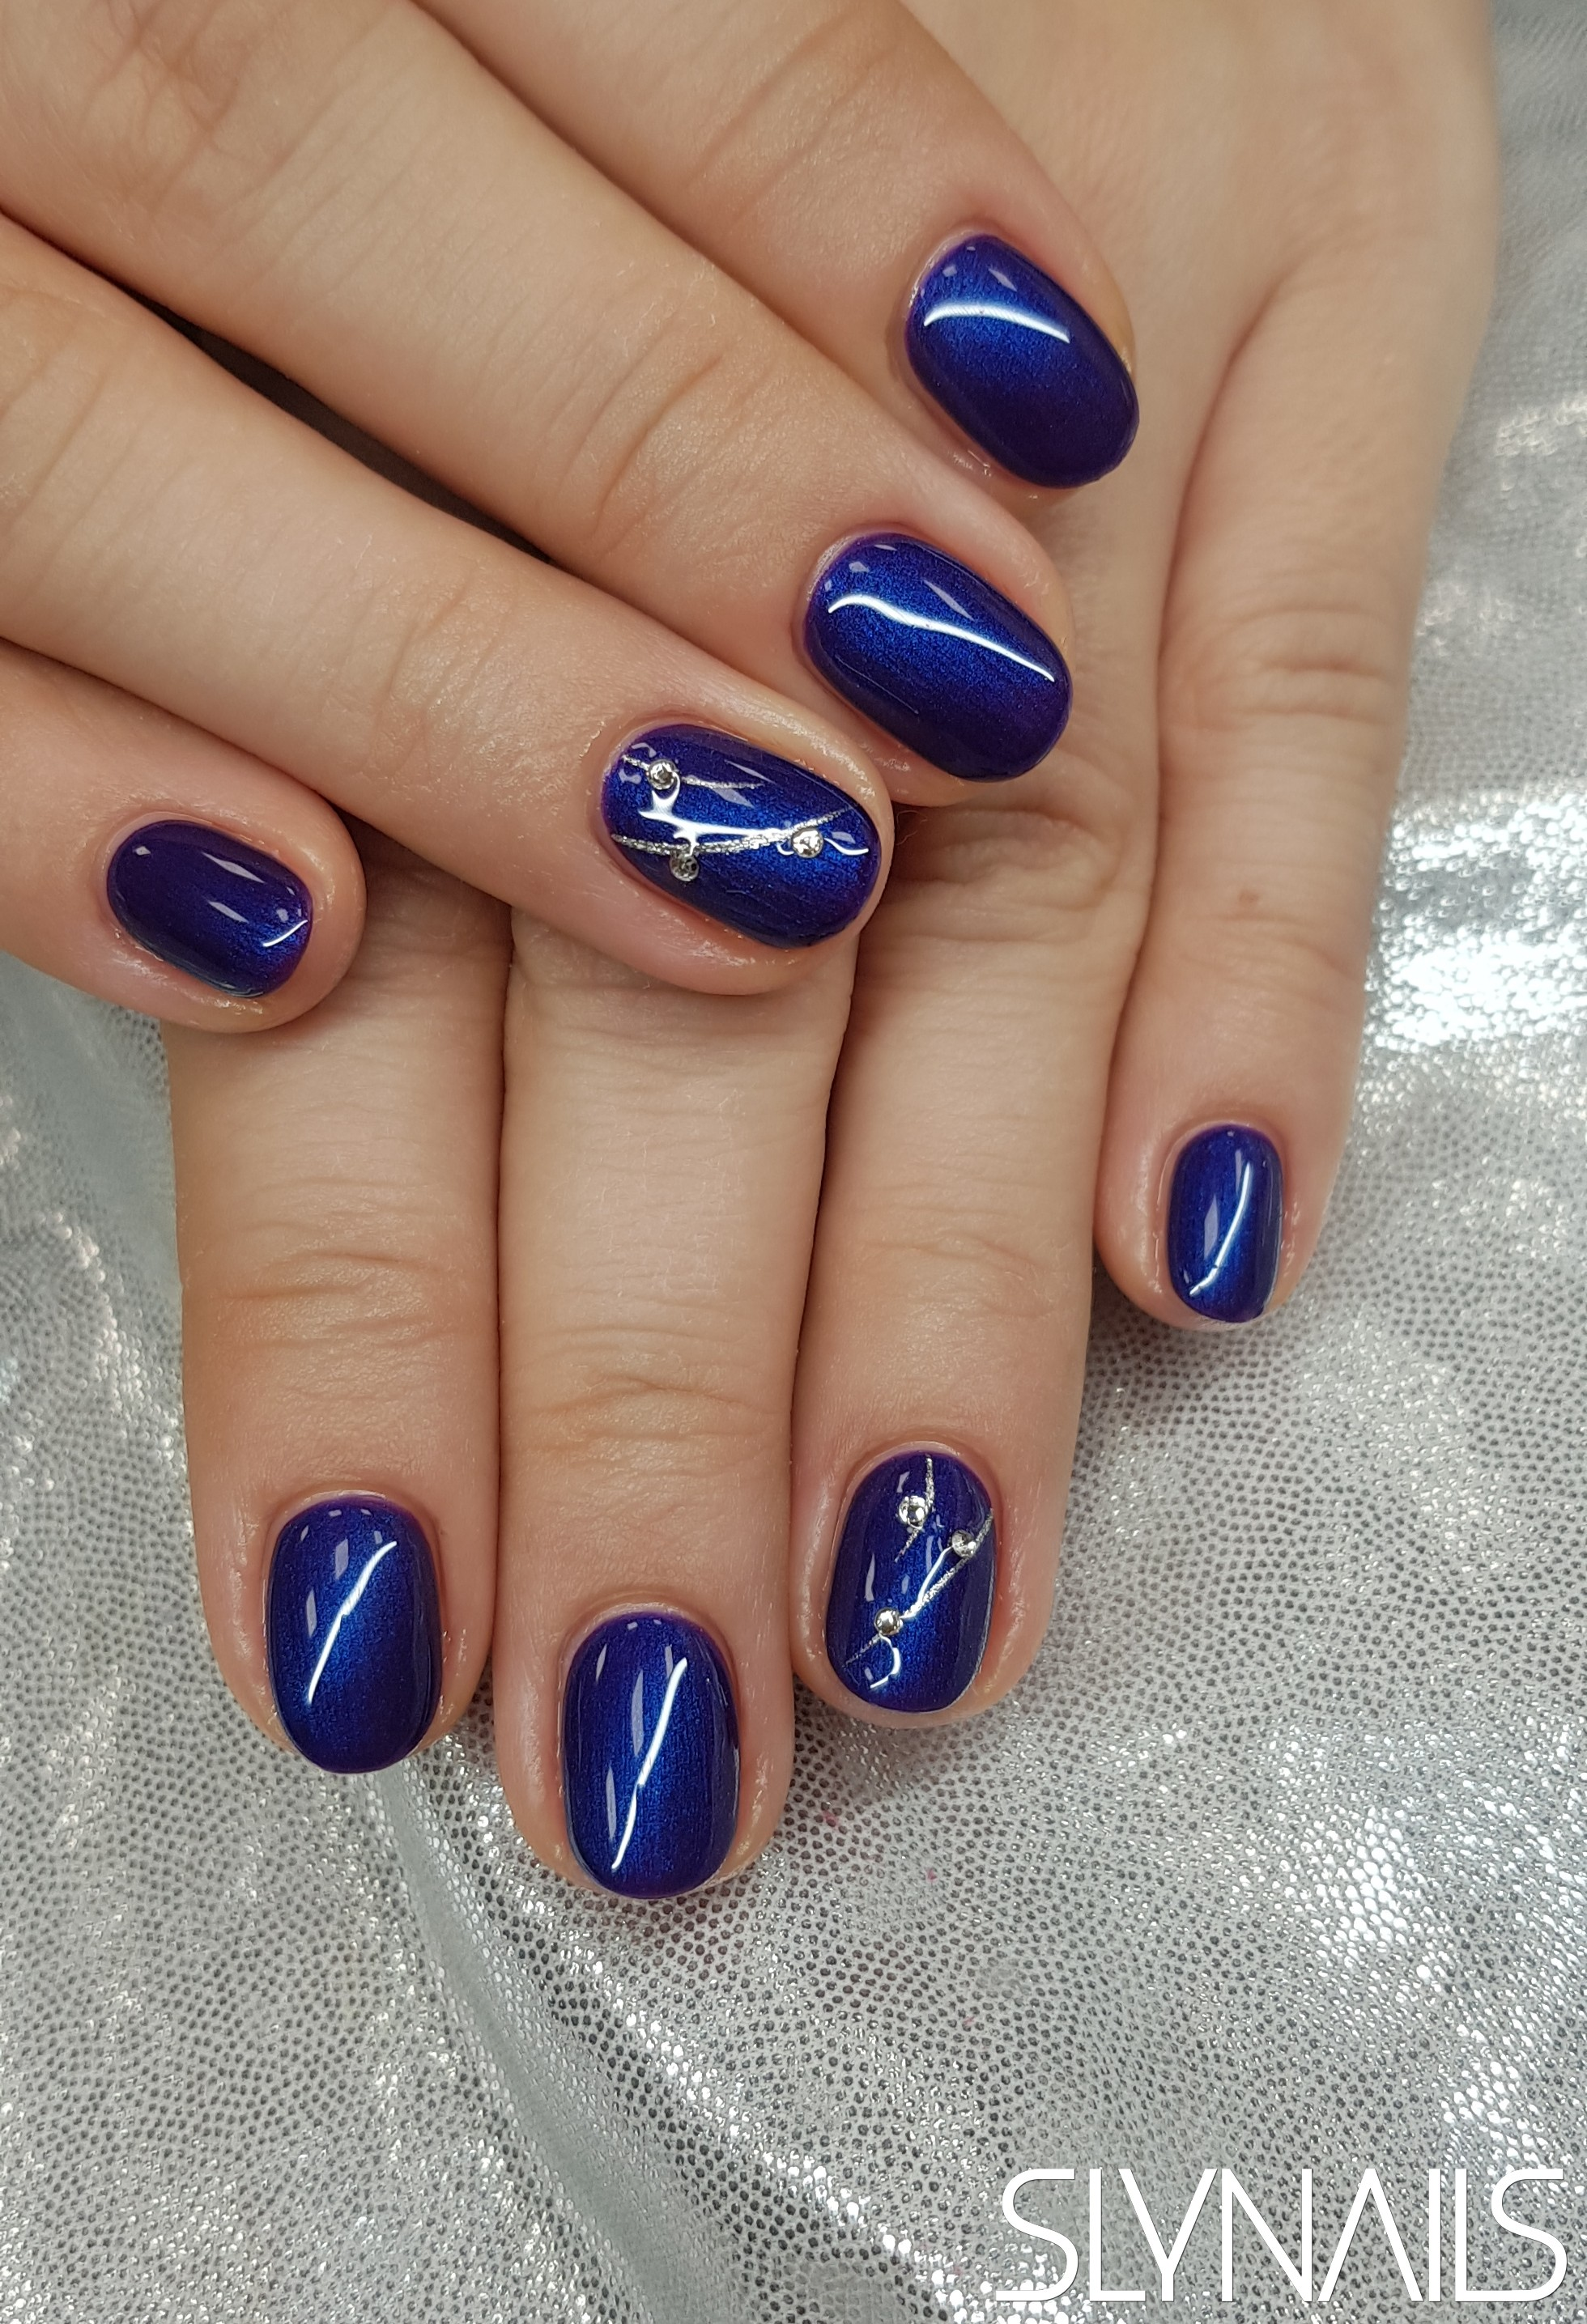 Gel-lac (gel polish), Blue, One color, Rounded